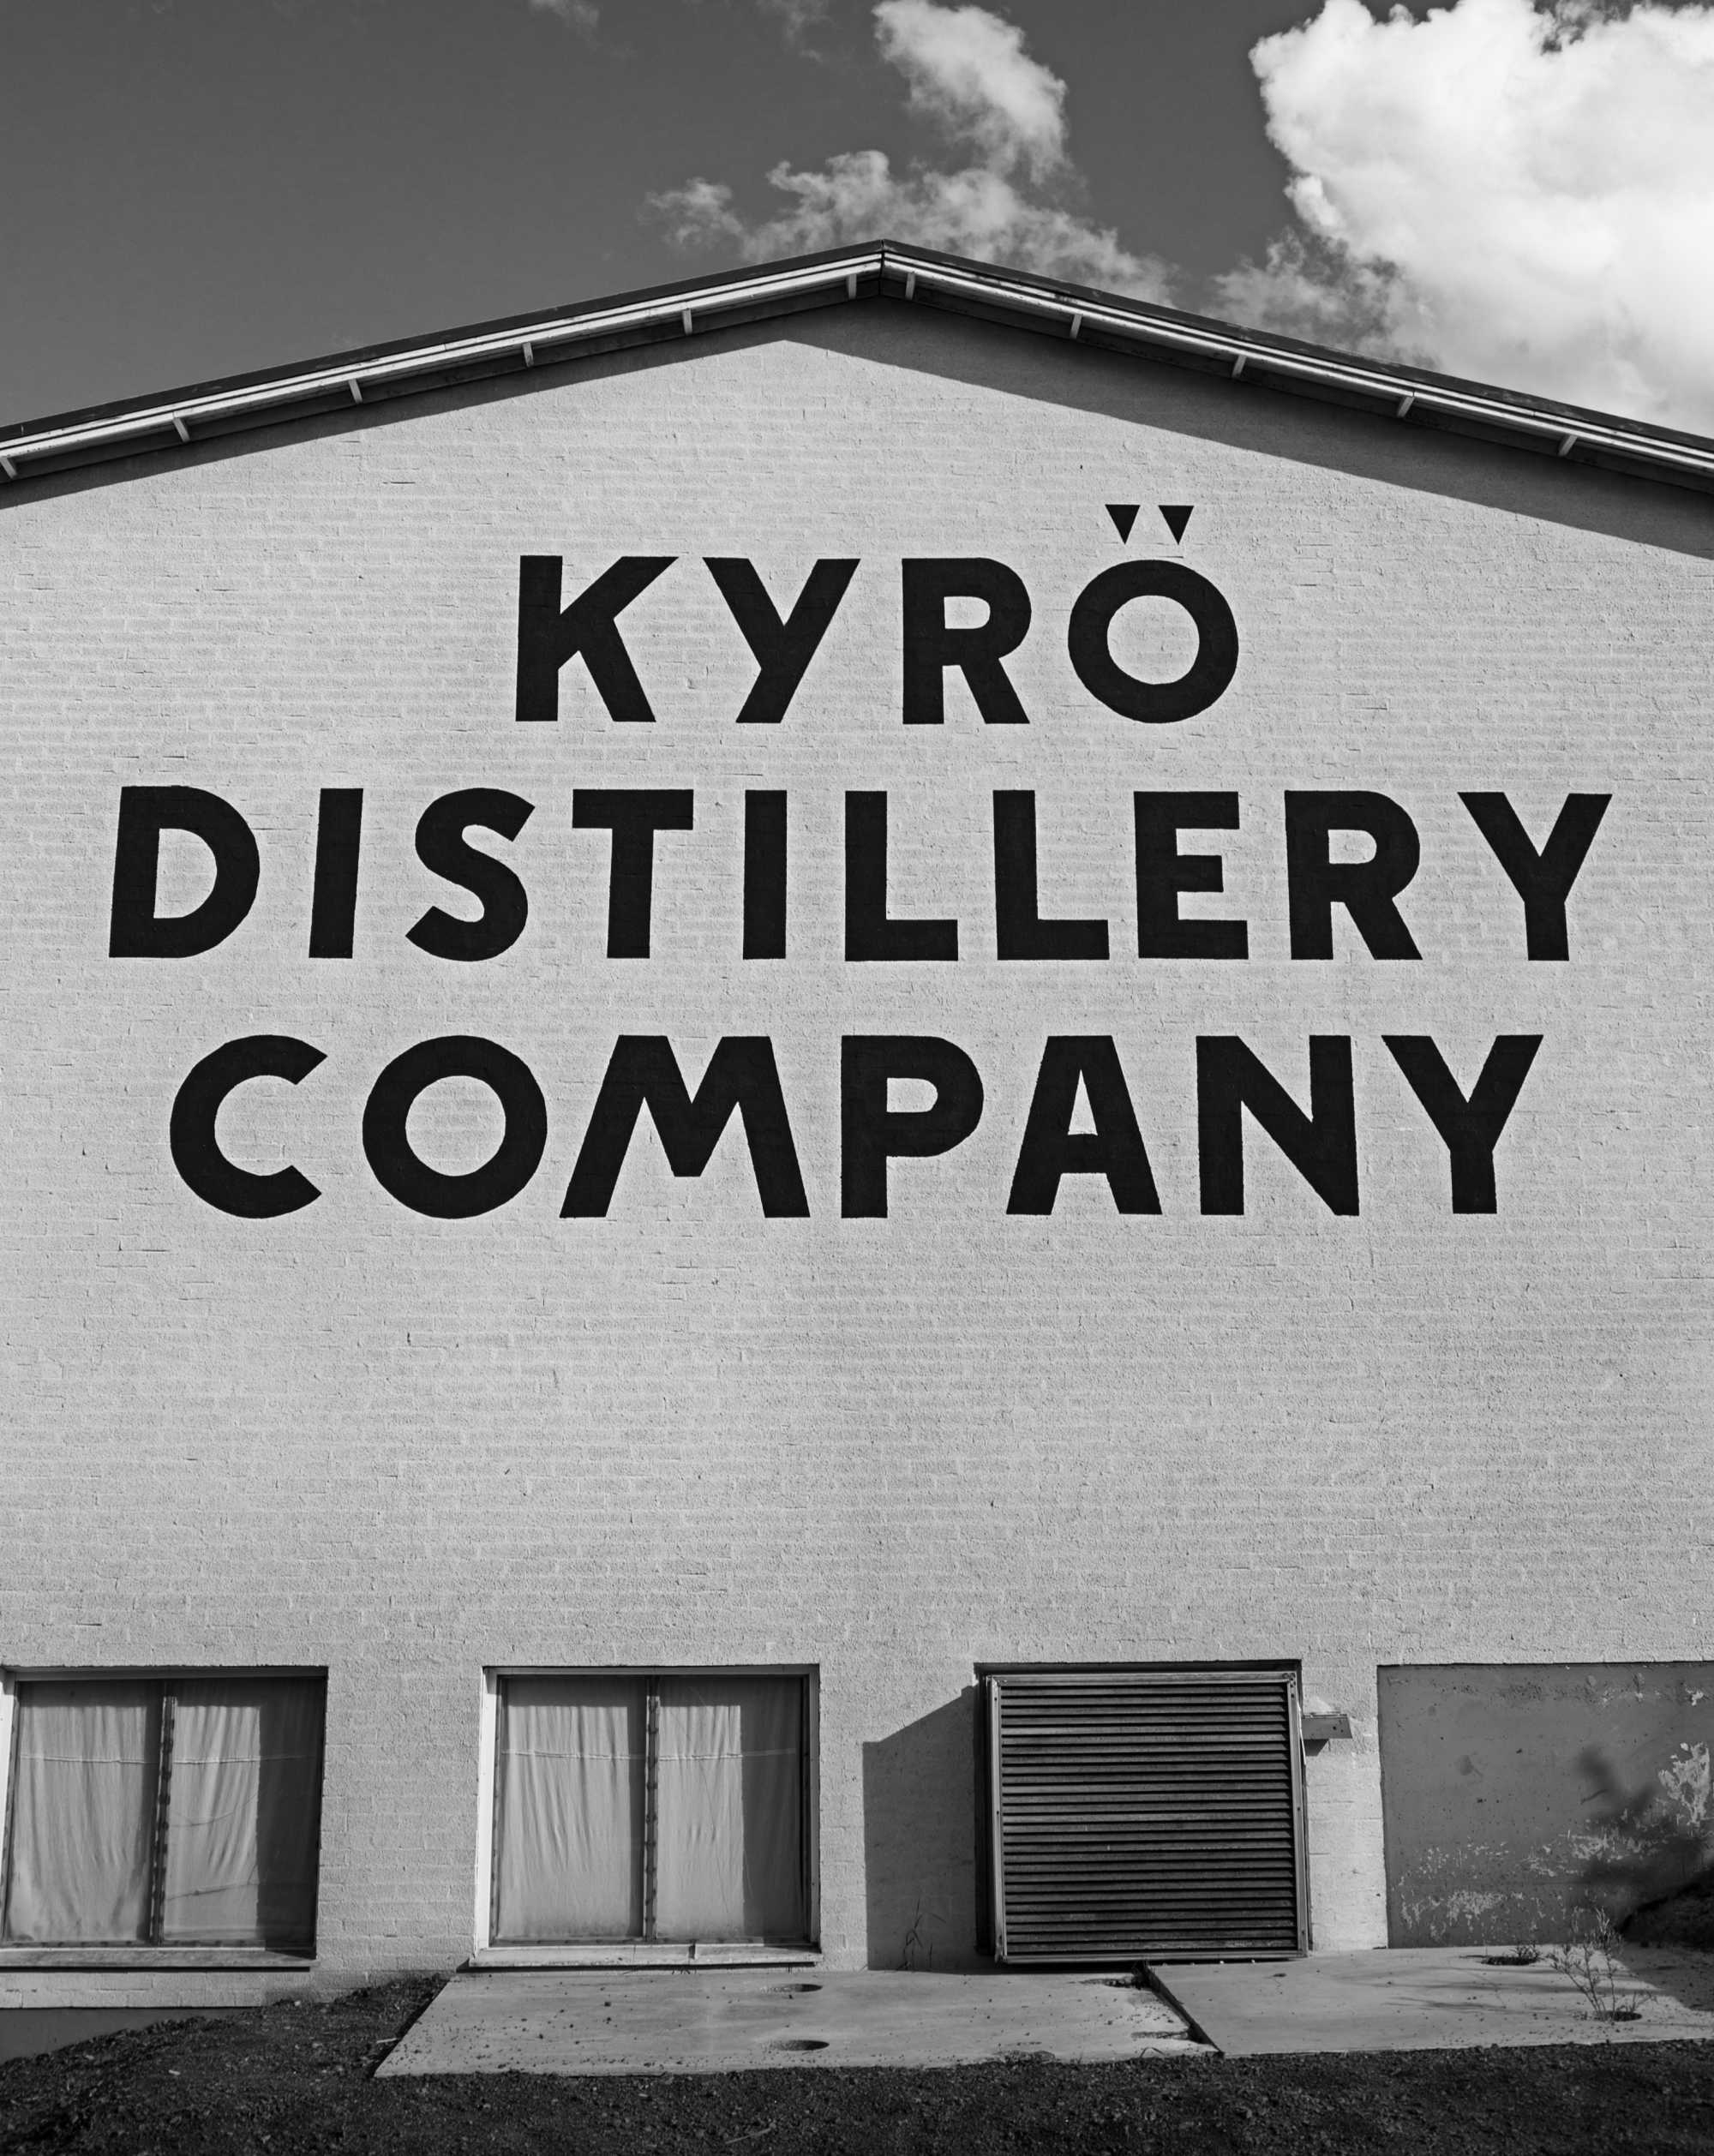 Kyrö Distillery Company logo on the wall of the distillery